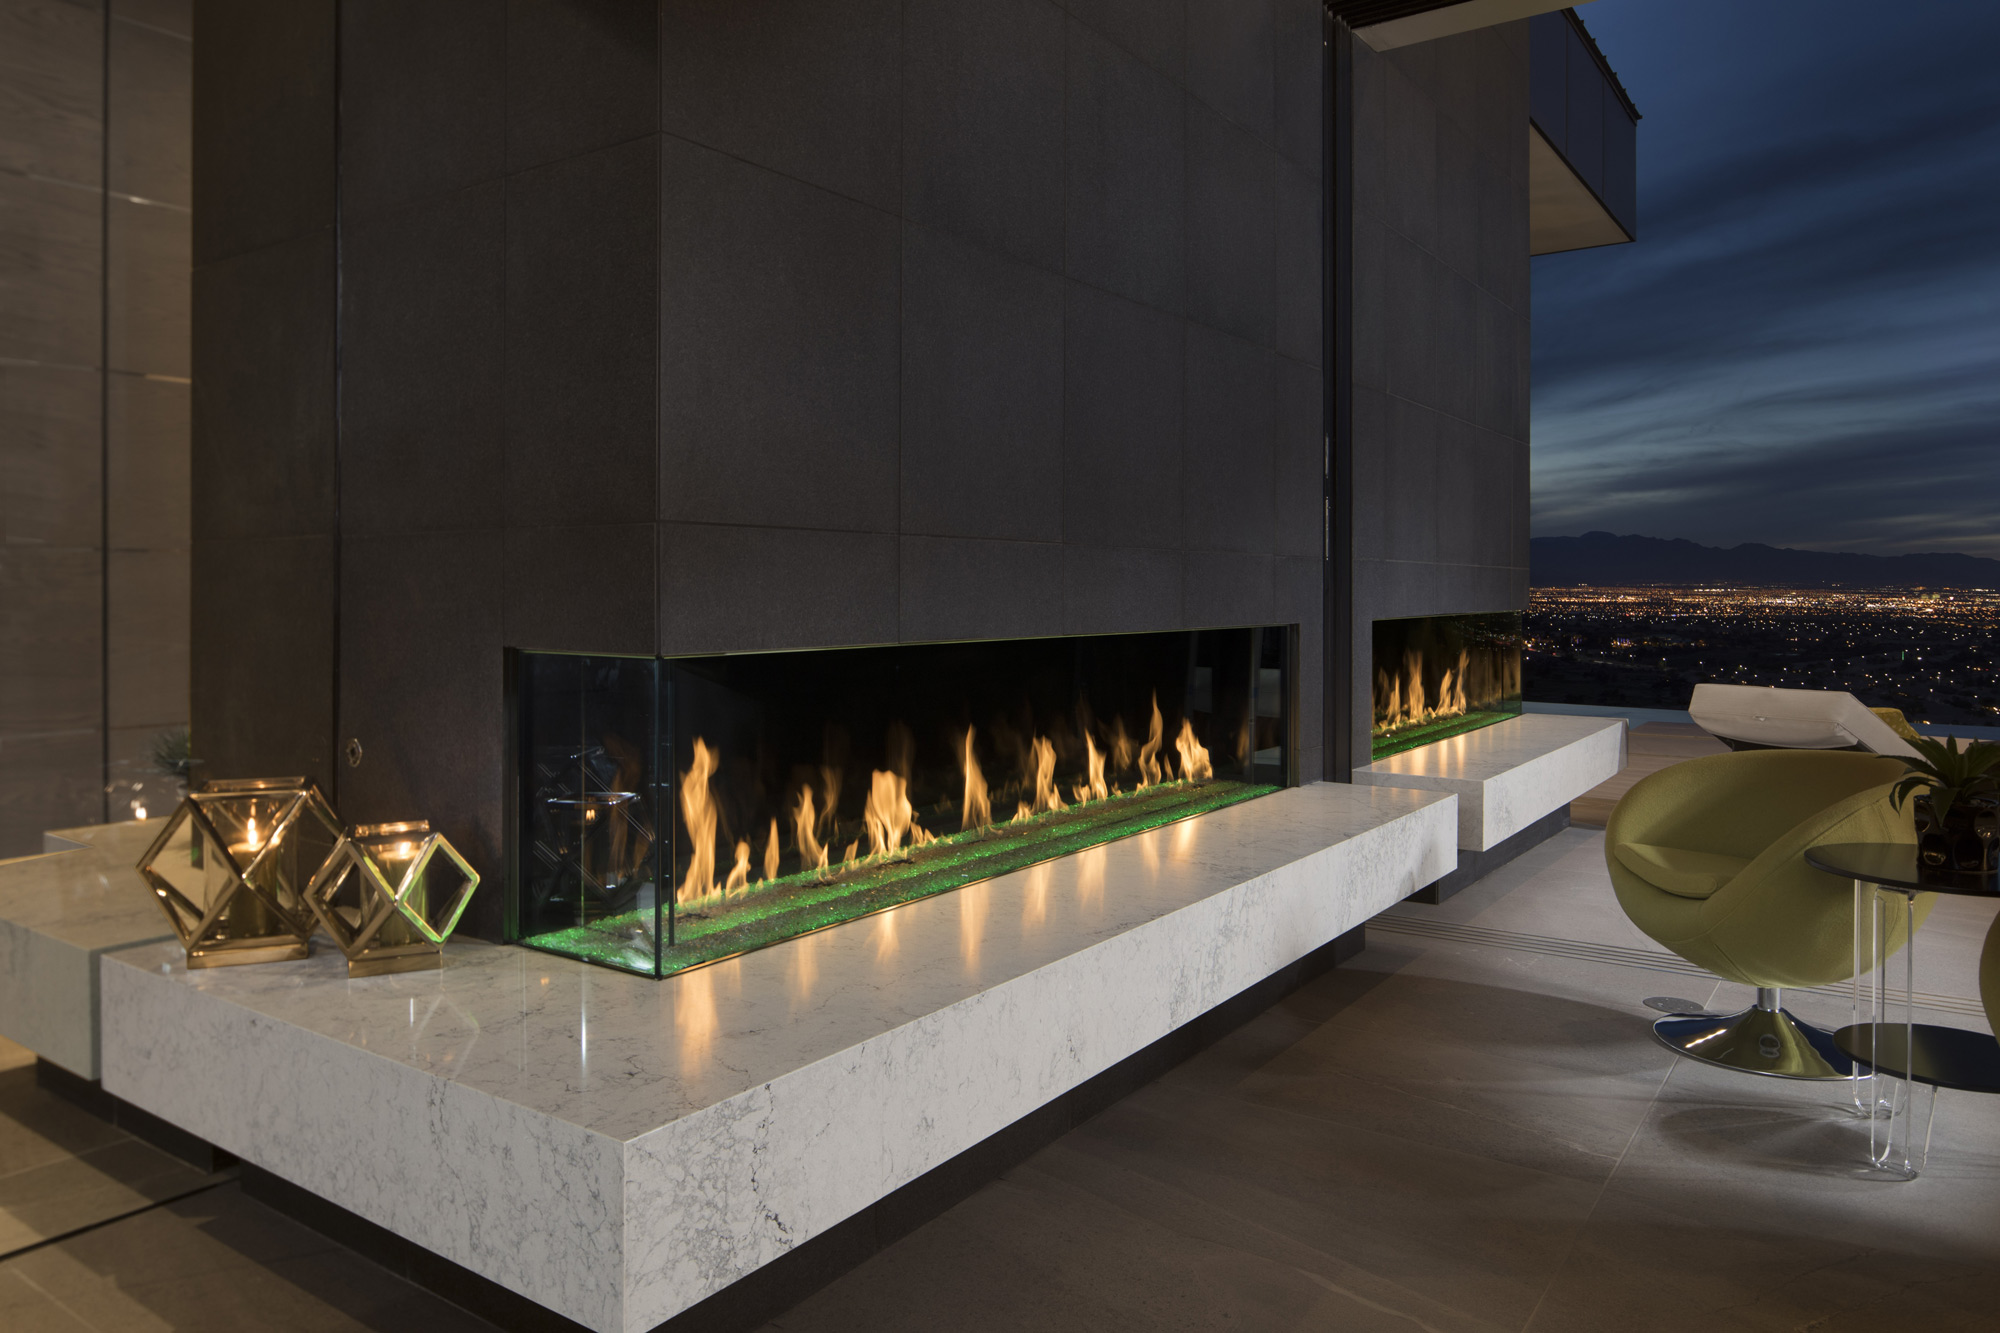 twin custom outdoor fireplaces spanning entire length of roof deck